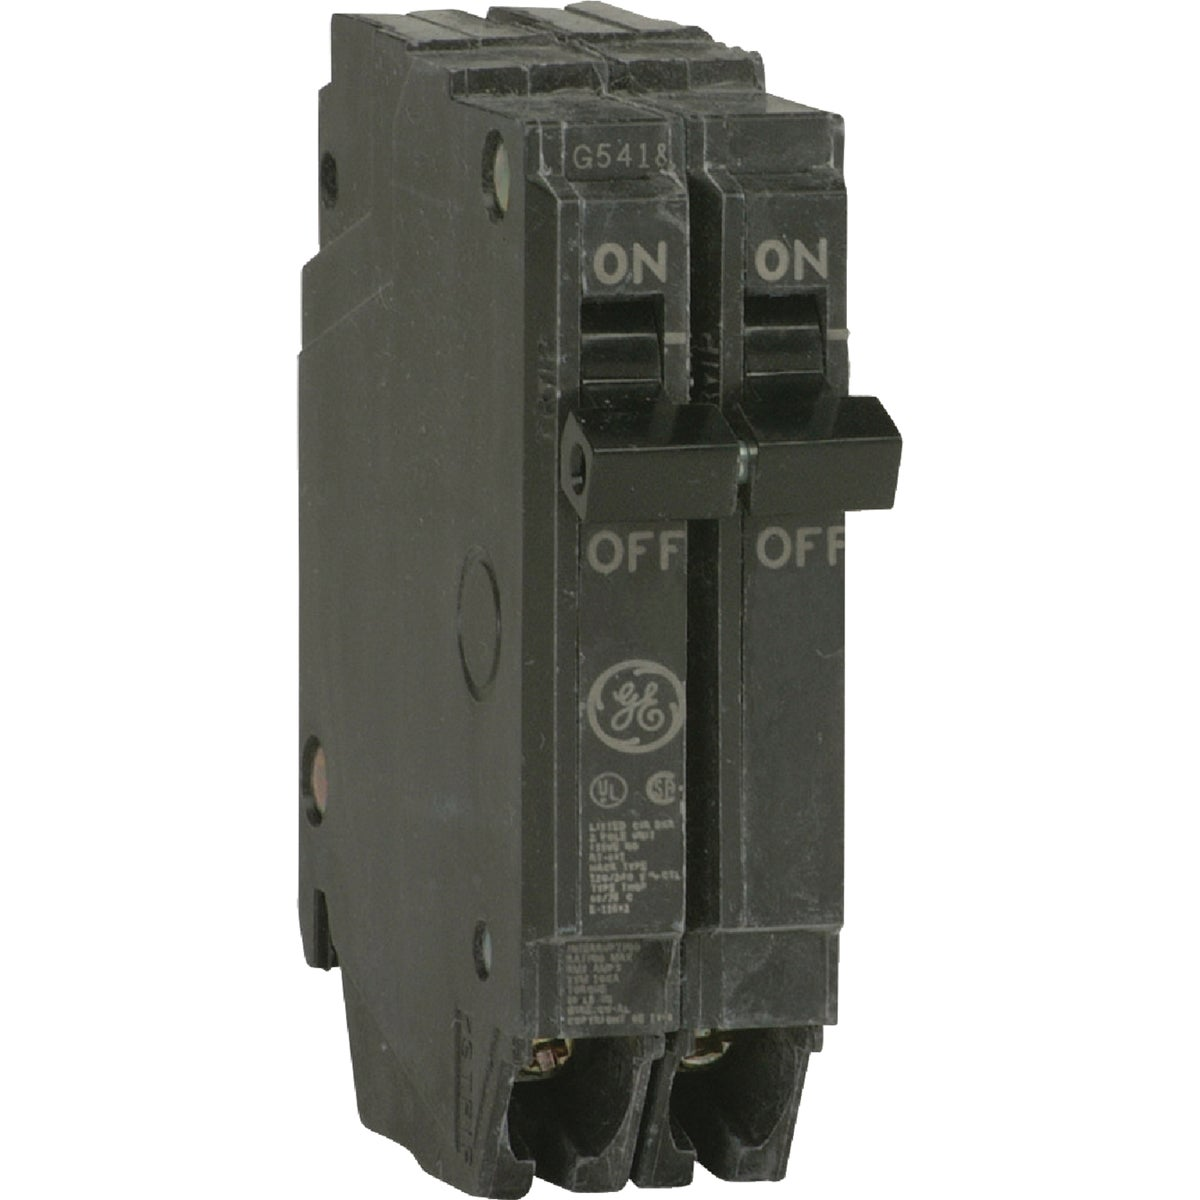 50A 2P CIRCUIT BREAKER - THQP250 by G E Industrial